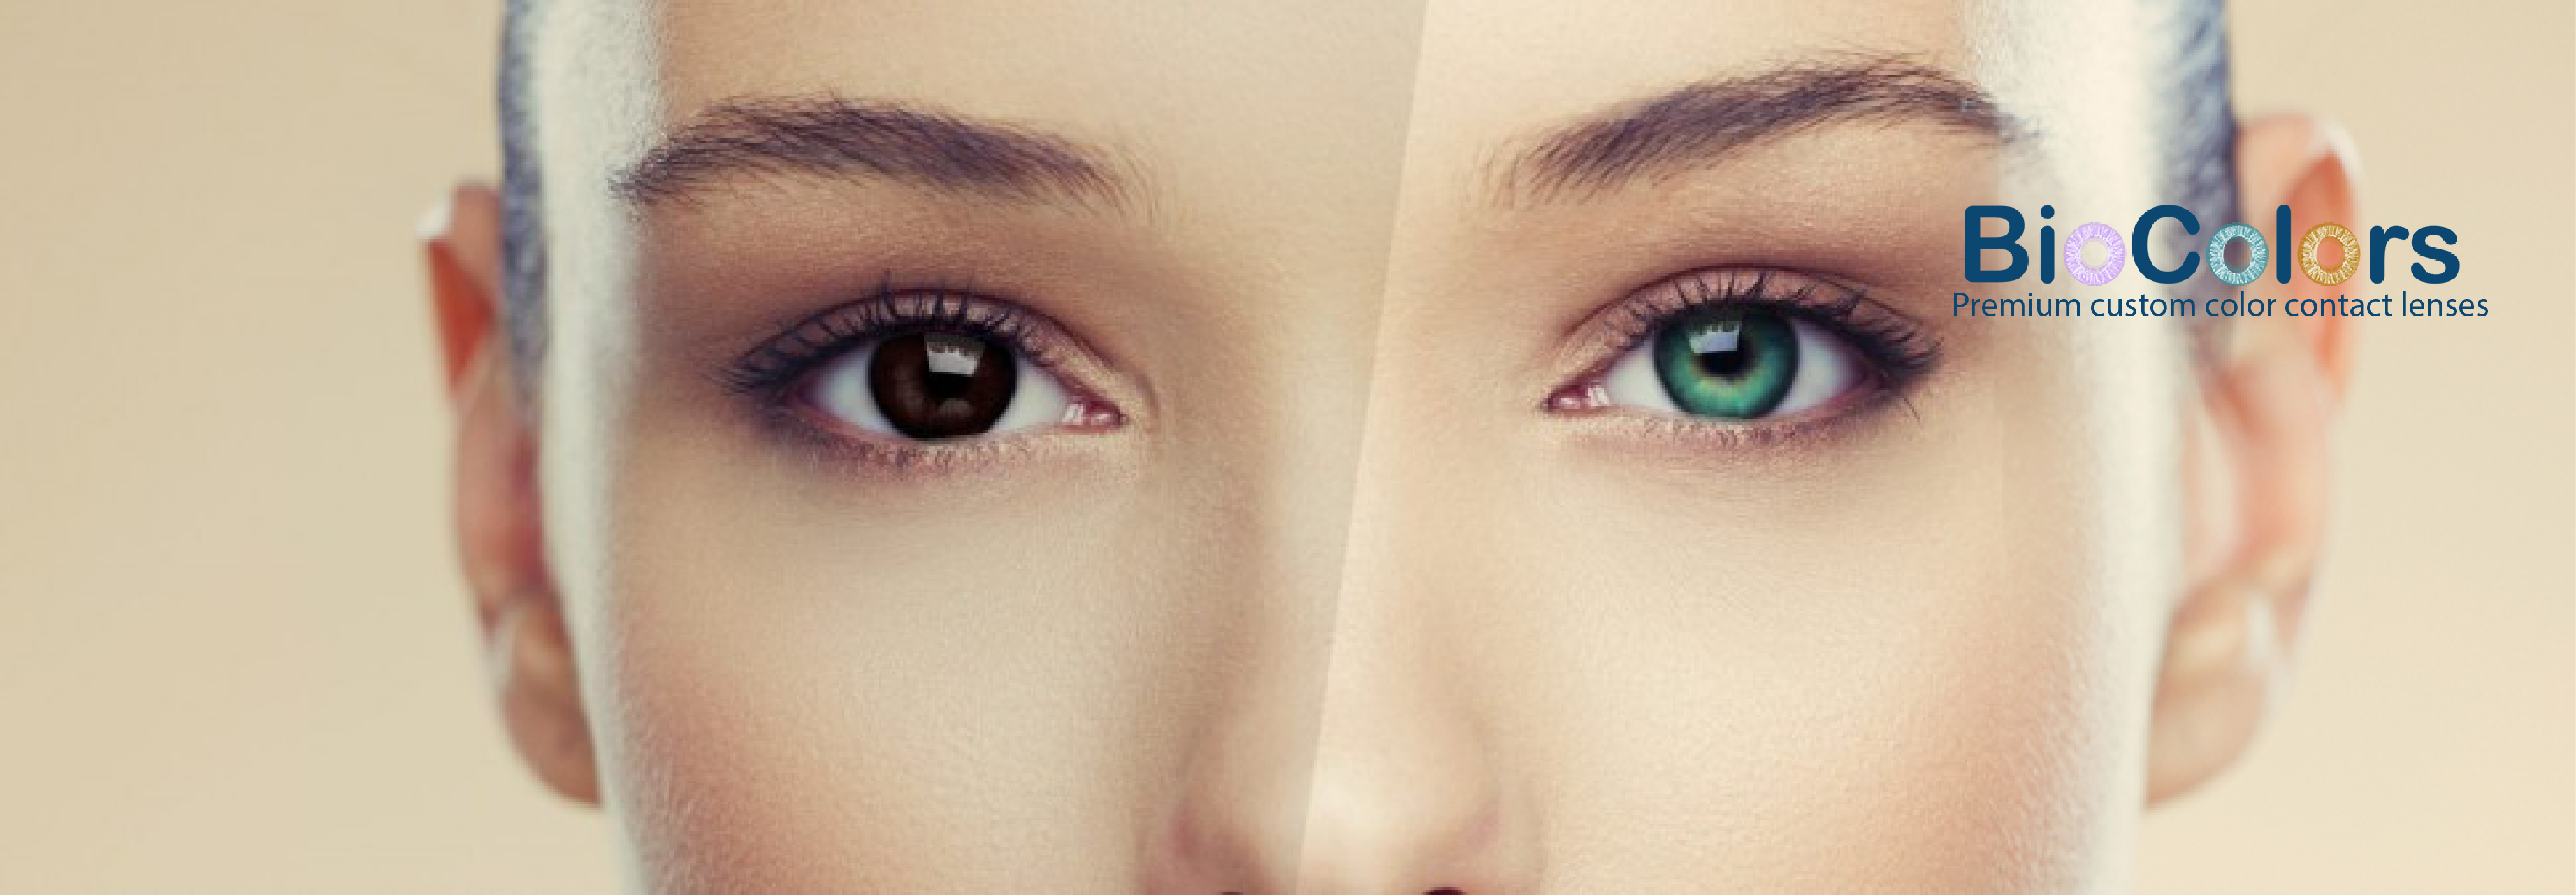 Orion vision group custom contact lenses nvjuhfo Image collections